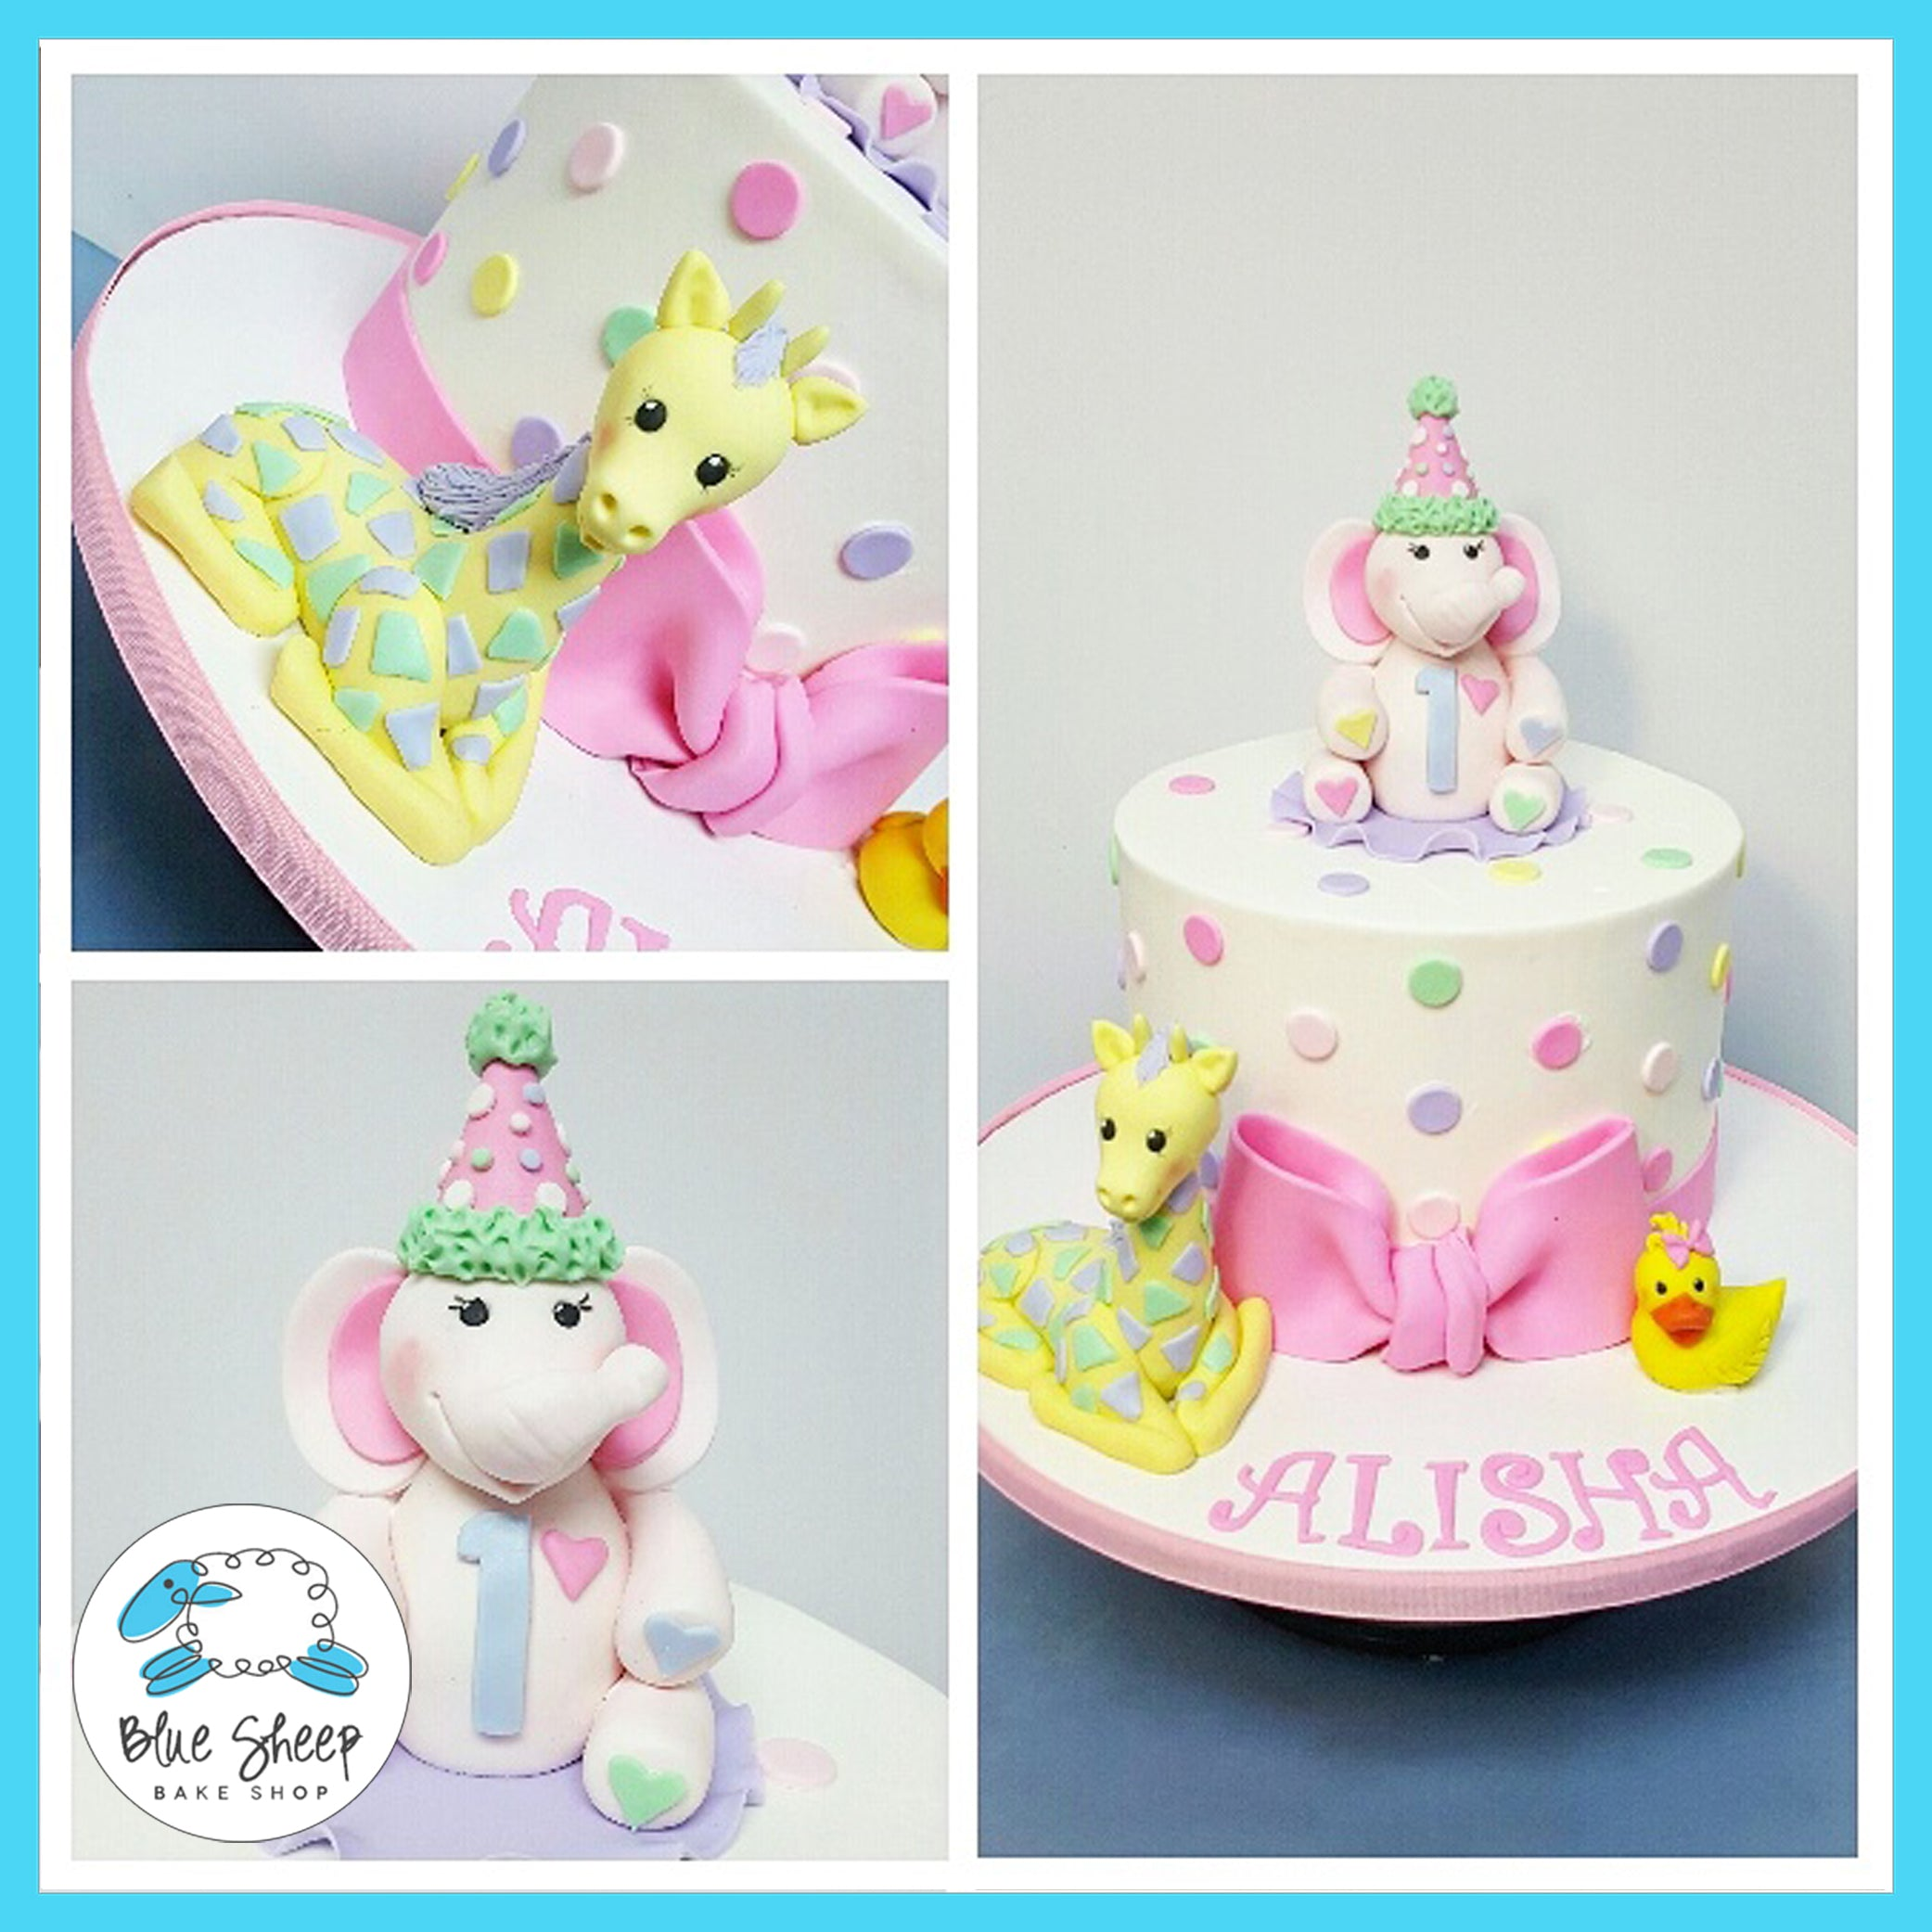 Alishas 1st Birthday Pastel Safari Cake Nj Blue Sheep Bake Shop